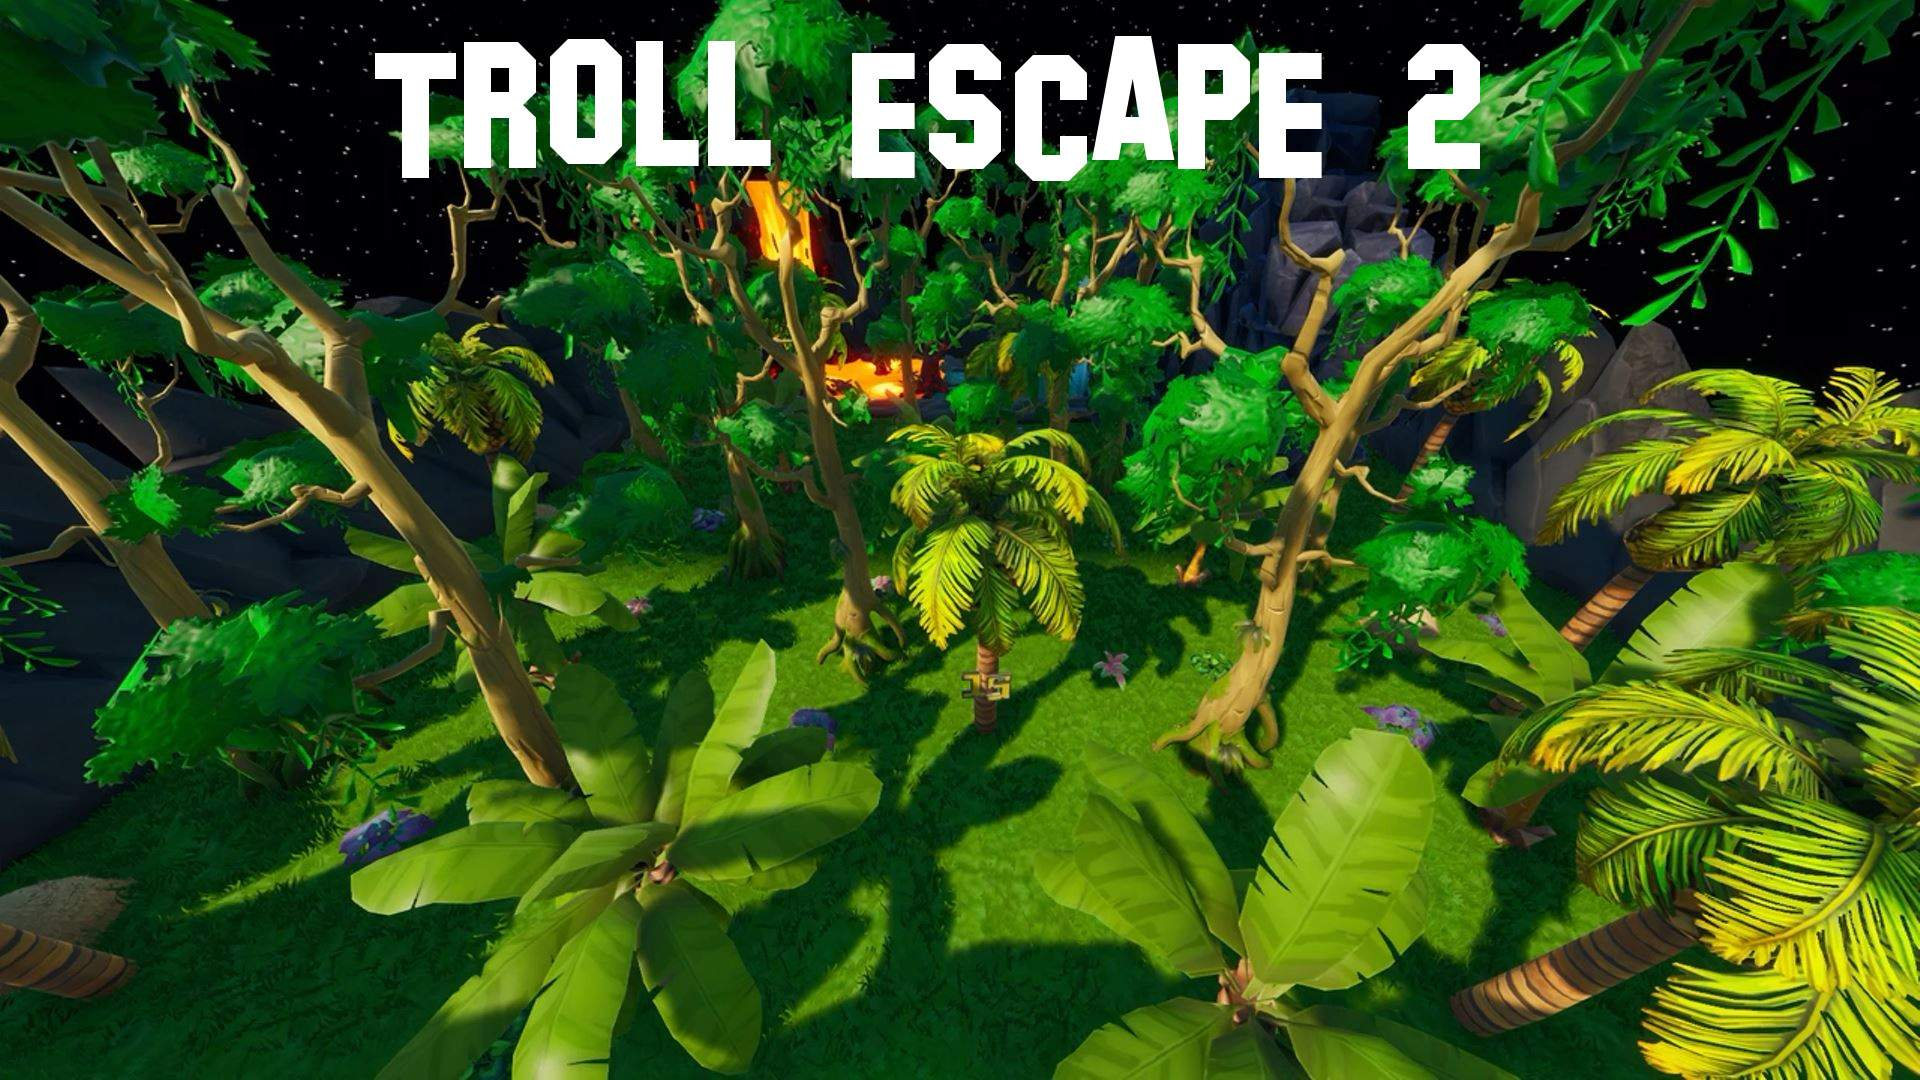 TROLL ESCAPE 2